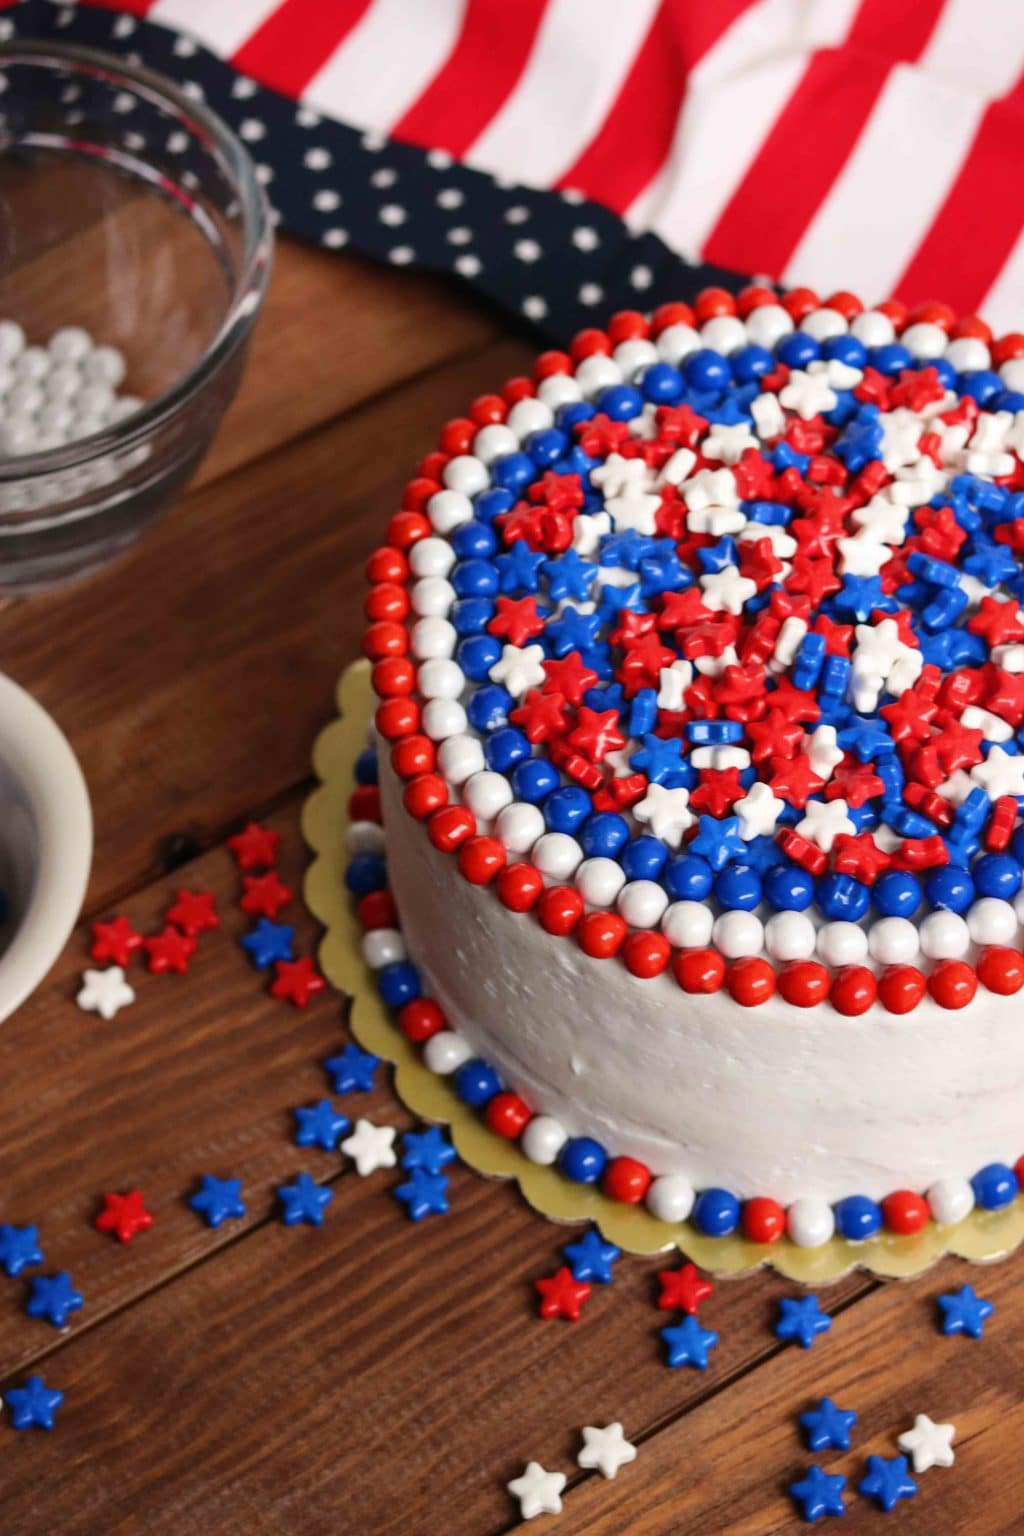 Red, white, and blue cake surrounded by red, white, and blue star-shaped candies on wooden table.